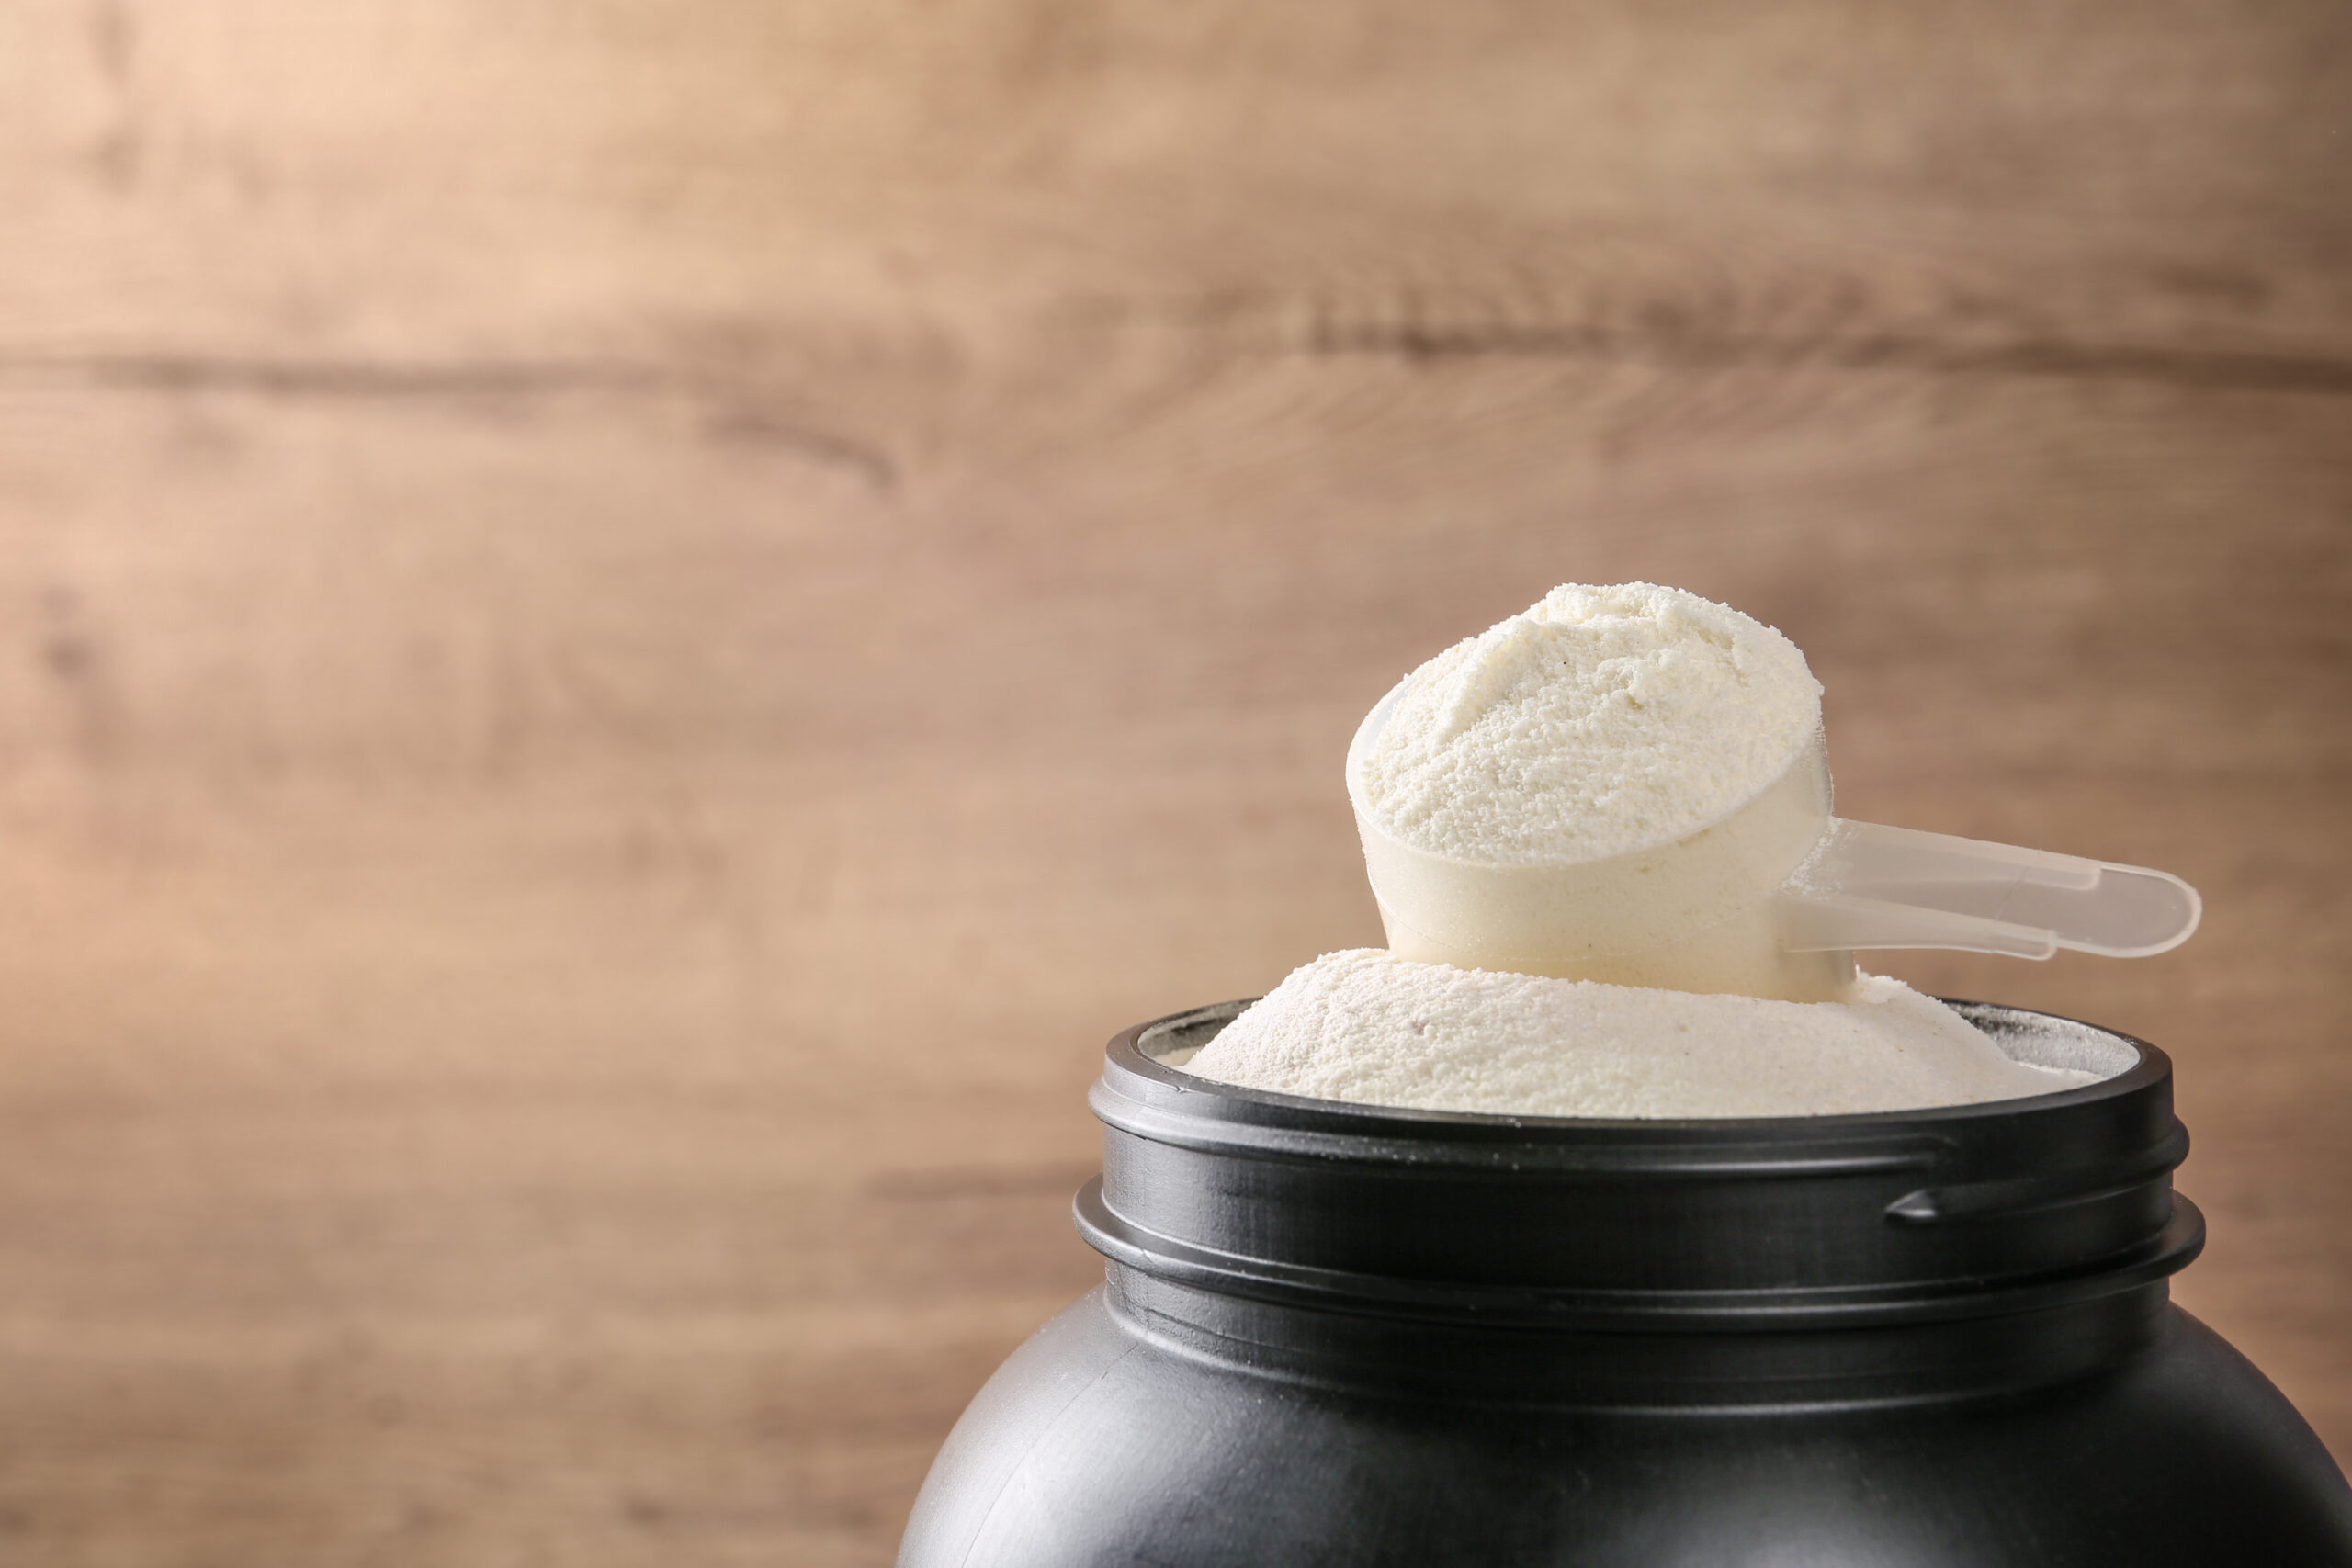 Black jar with measuring scoop of protein powder against wooden background. Space for text